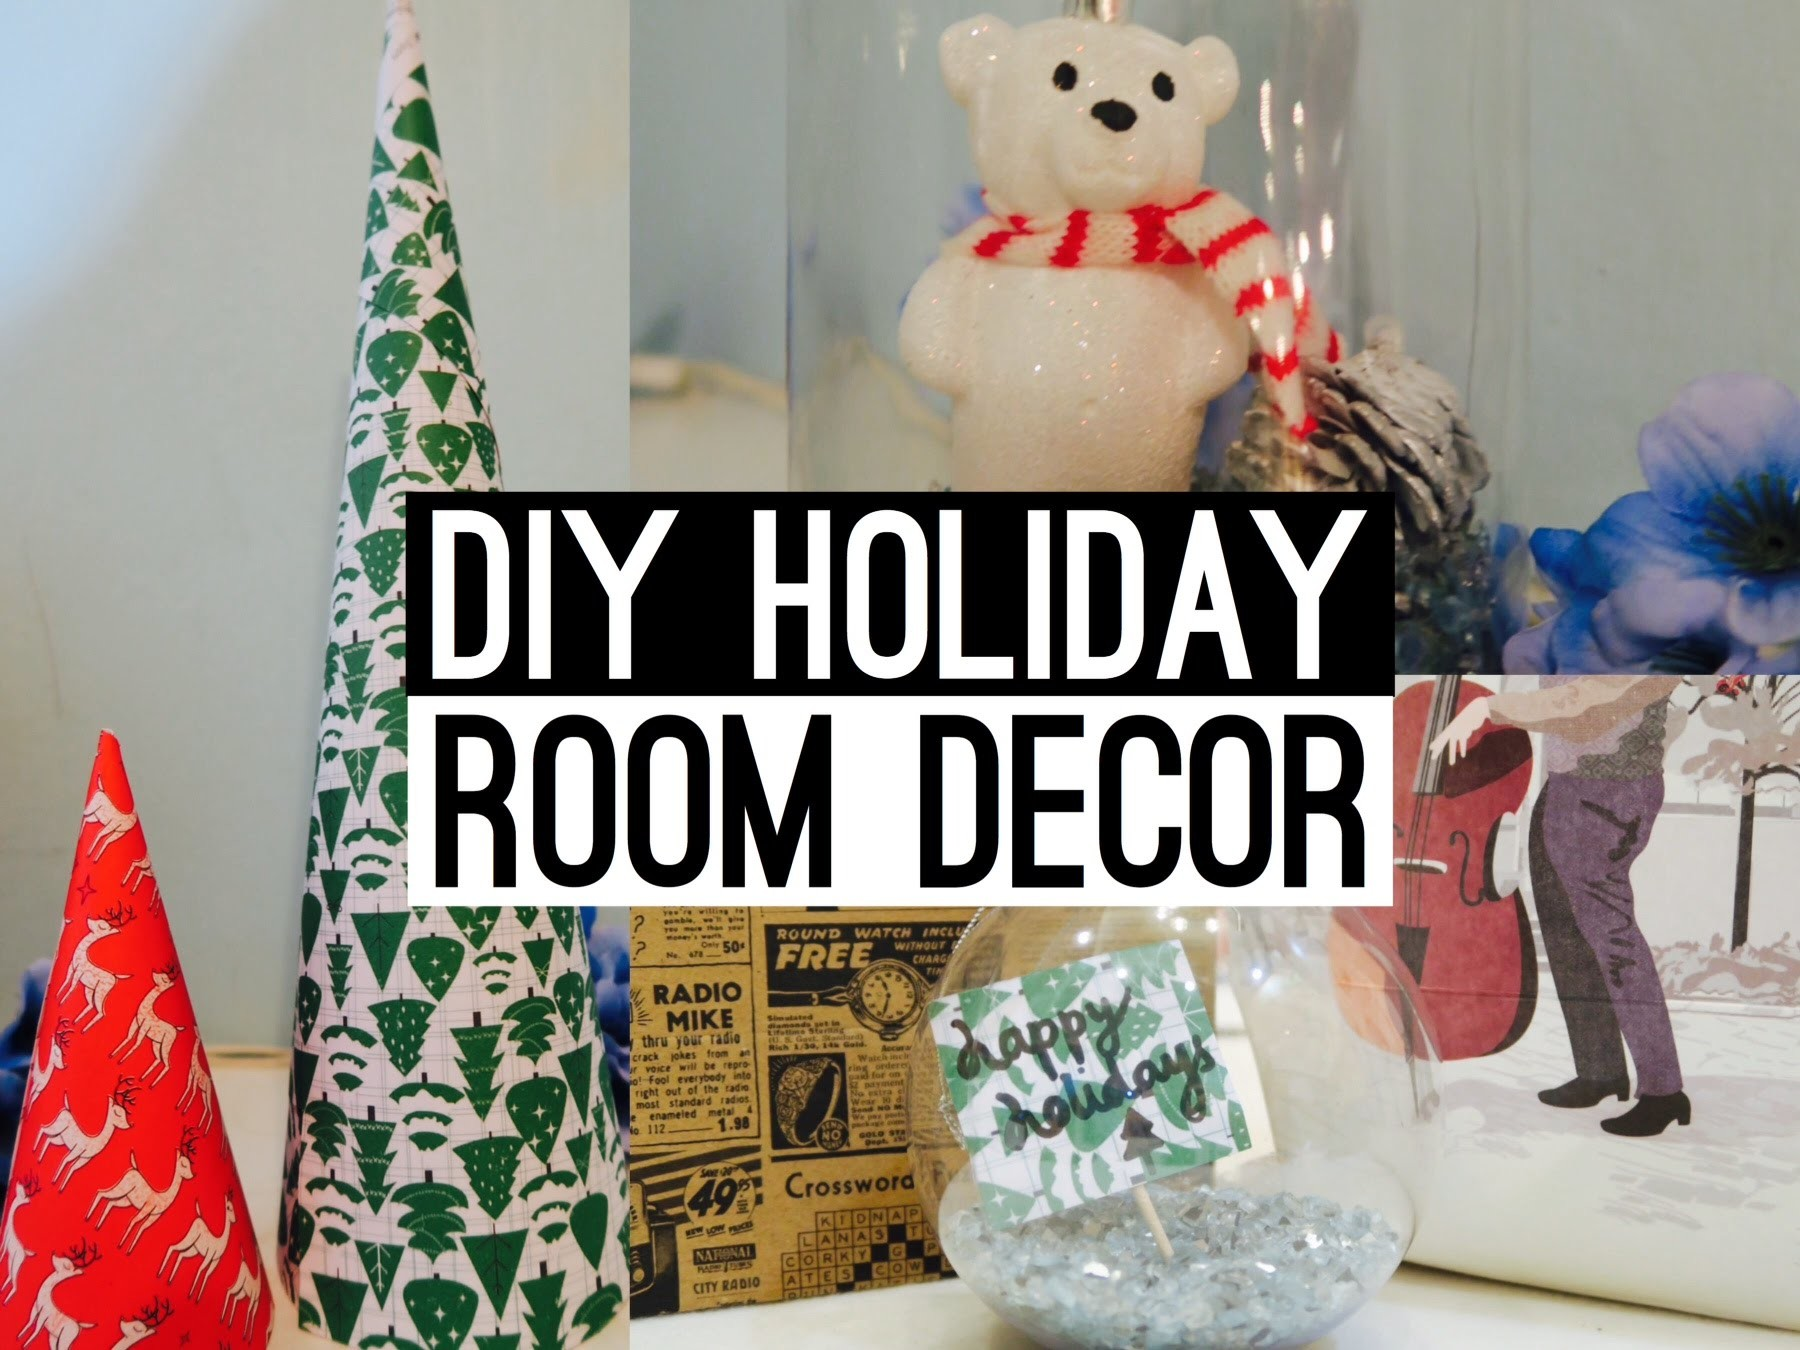 DIY Holiday Room Decor | Easy Christmas Decorations